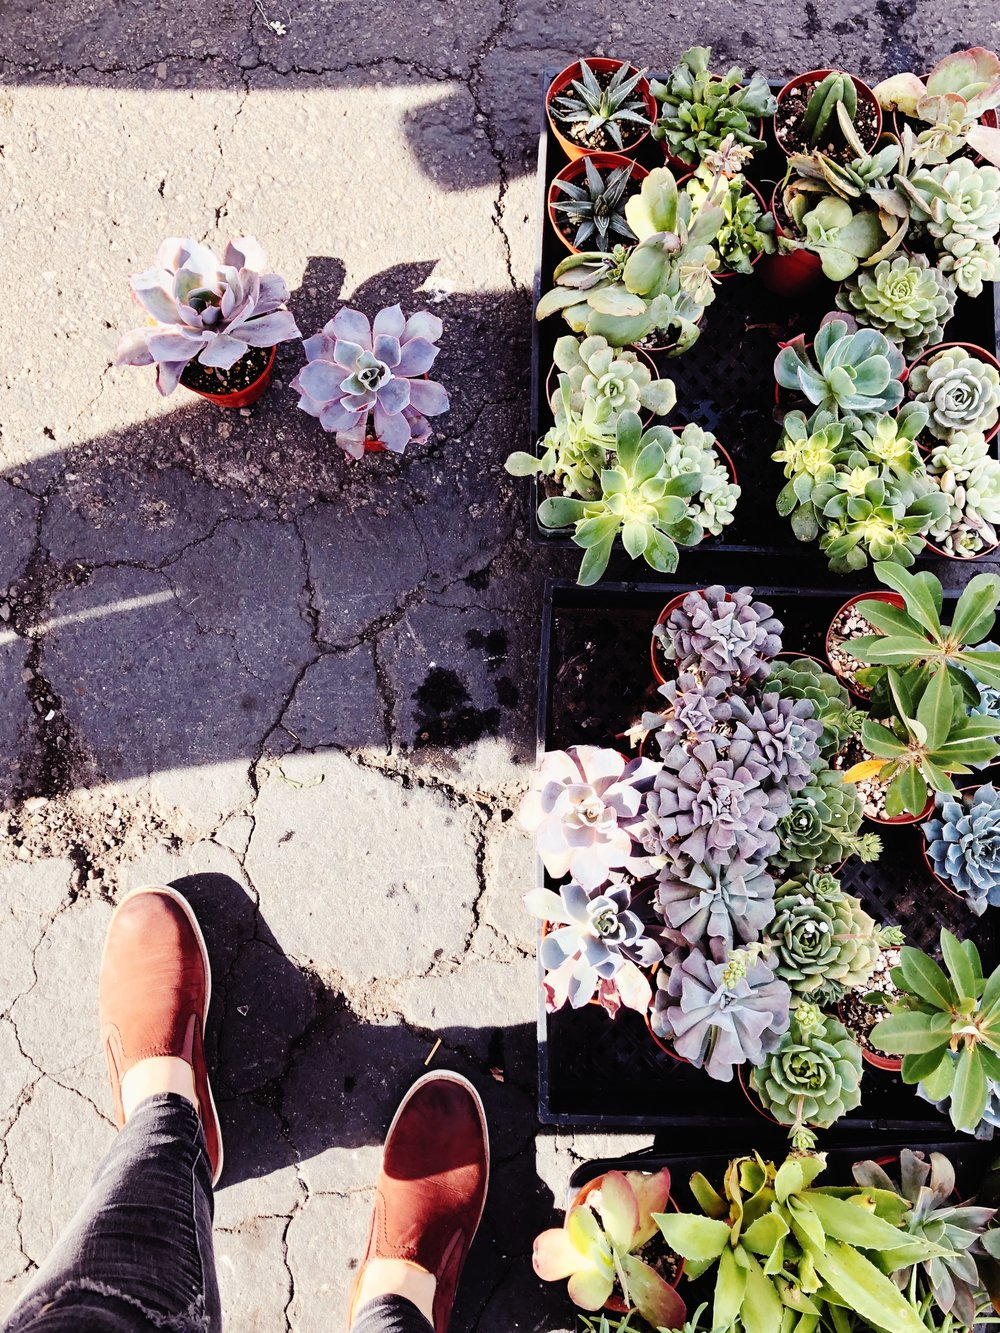 Some other favorite SD spots includeKobey's Swap Meet, where I love to wander the stalls forunique vintage pieces and $1 succulents. -